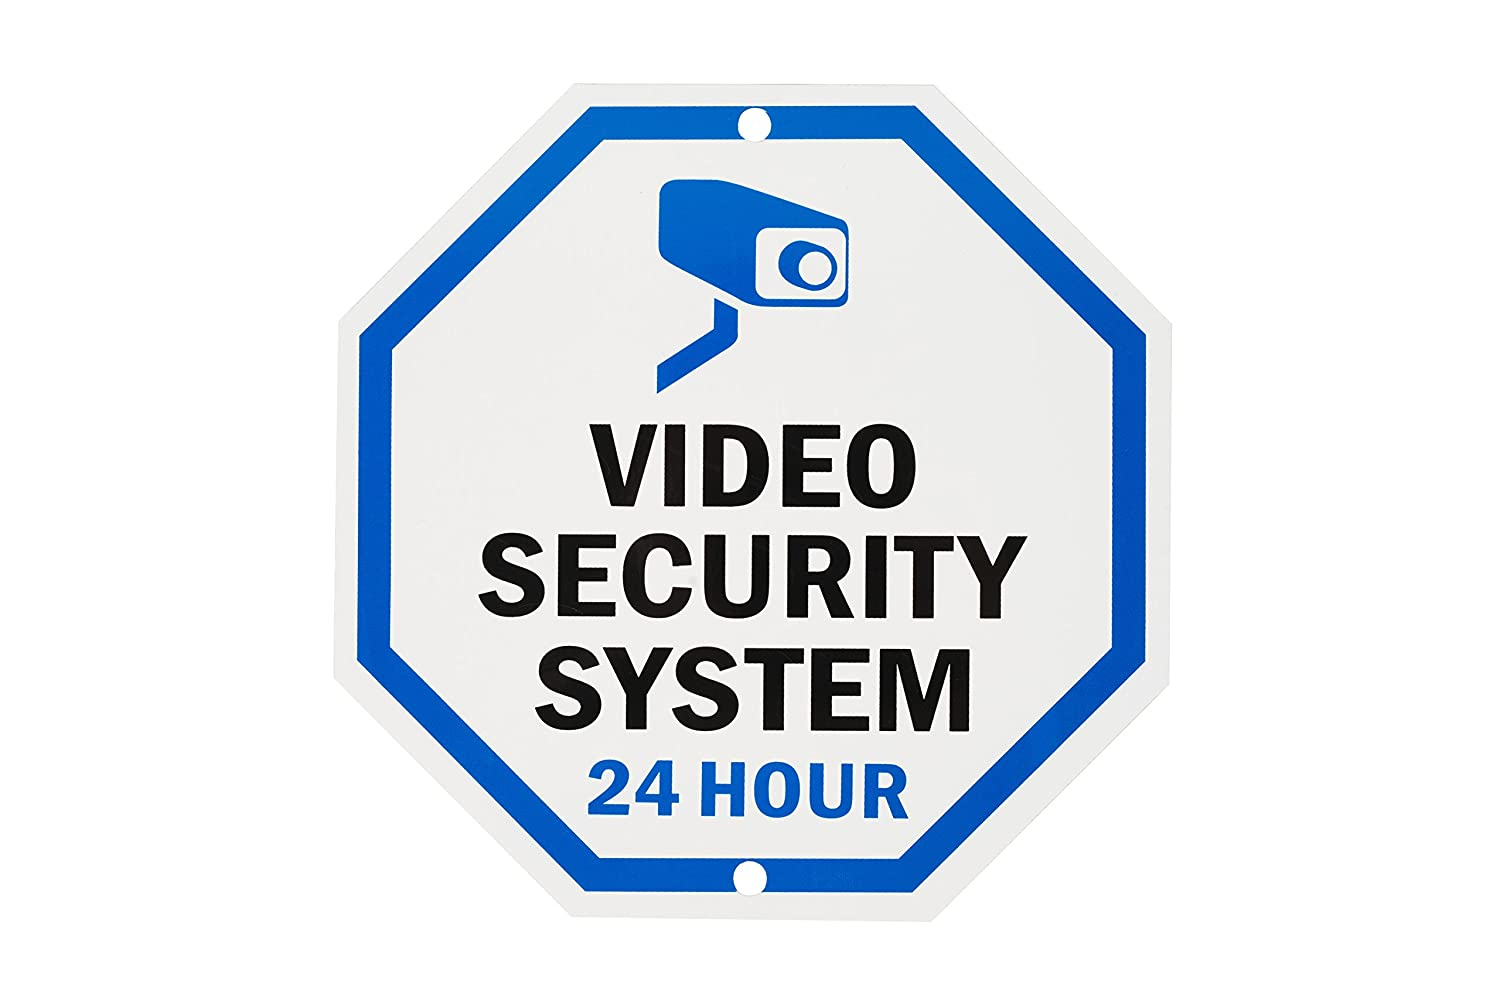 "WALI Aluminum Sign for Home Business Security, Legend ""Video Security System 24 Hour"",10"" Tall Octagon, UV Protected & Waterproof, Black/Blue on White"